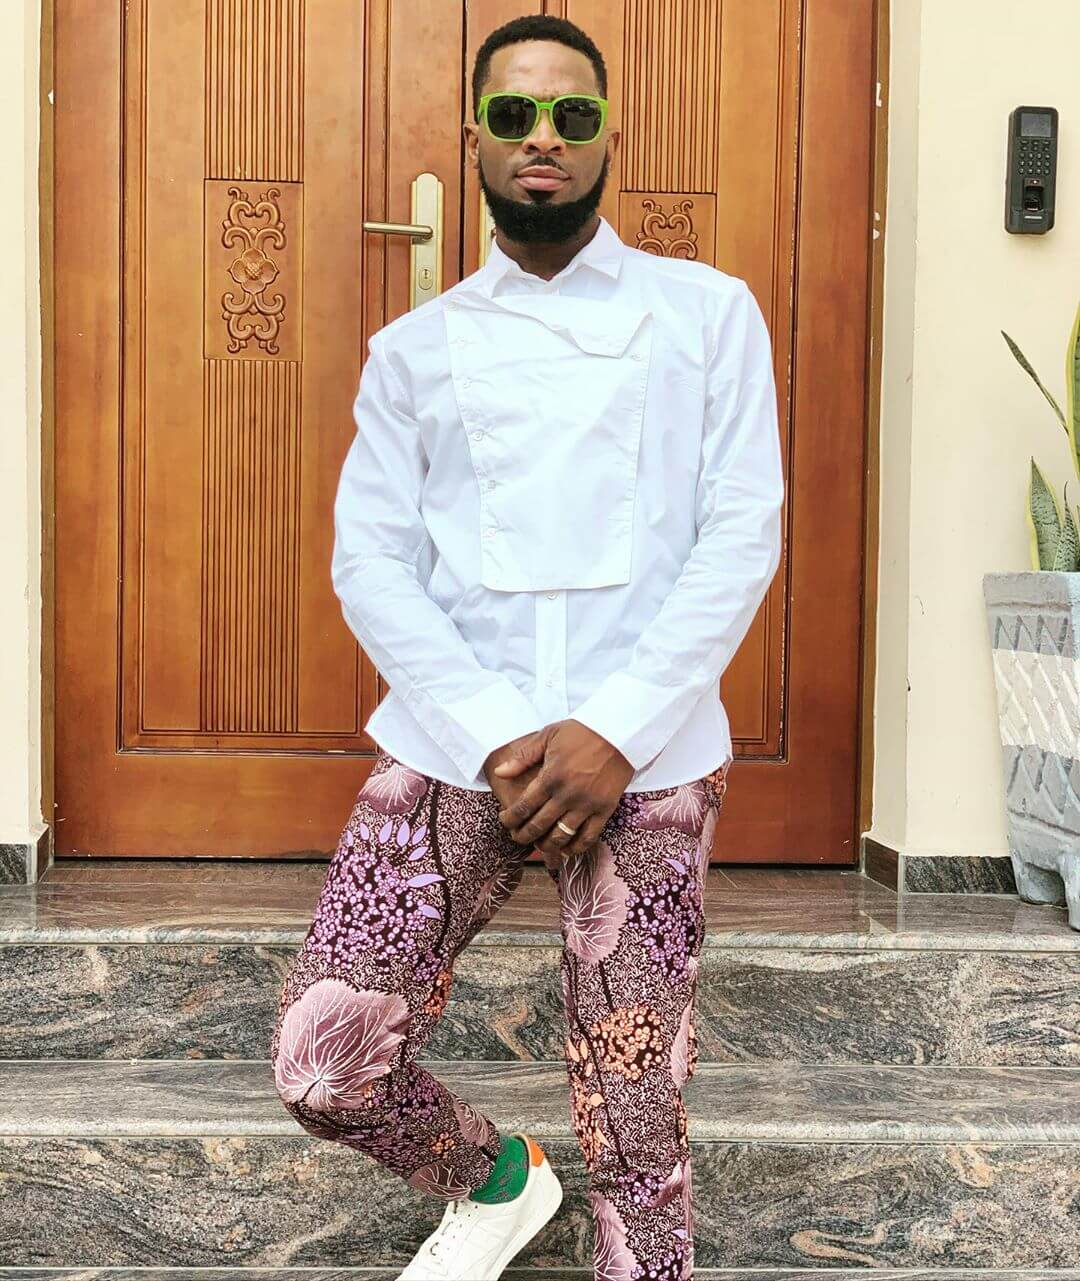 D'banj says the accuser should apologize for the lies